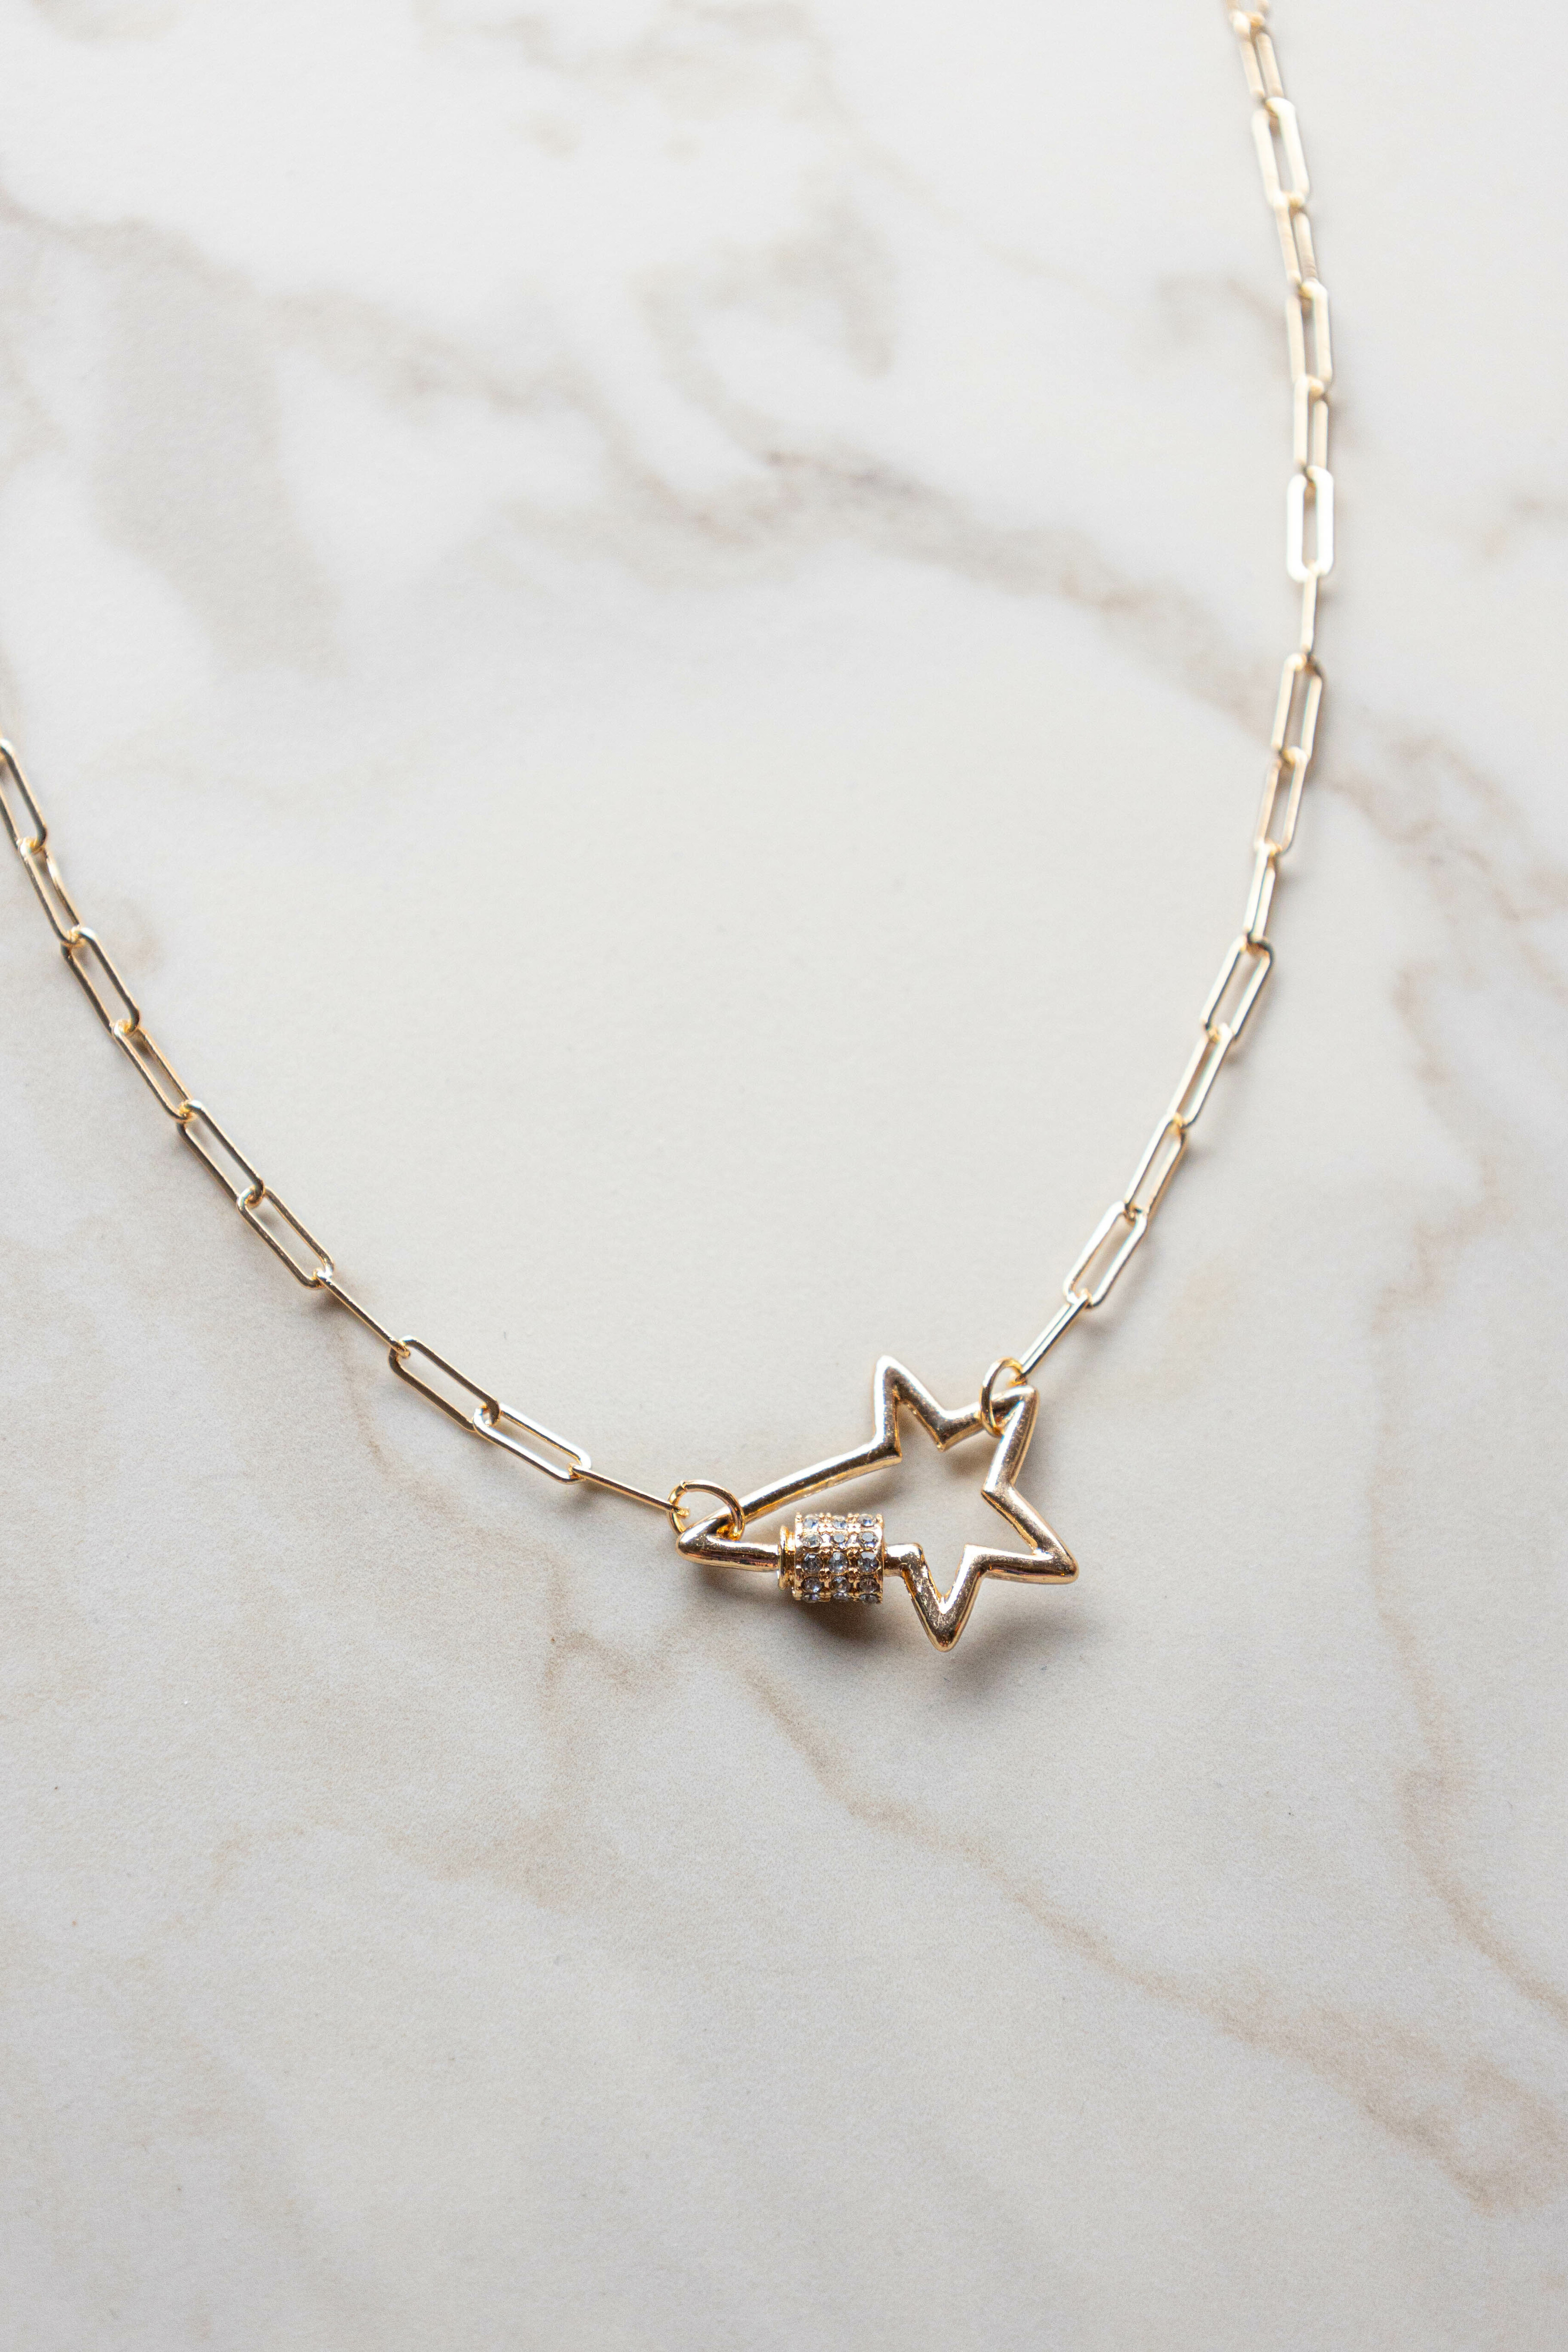 Gold Paperclip Chain Star Charm Necklace